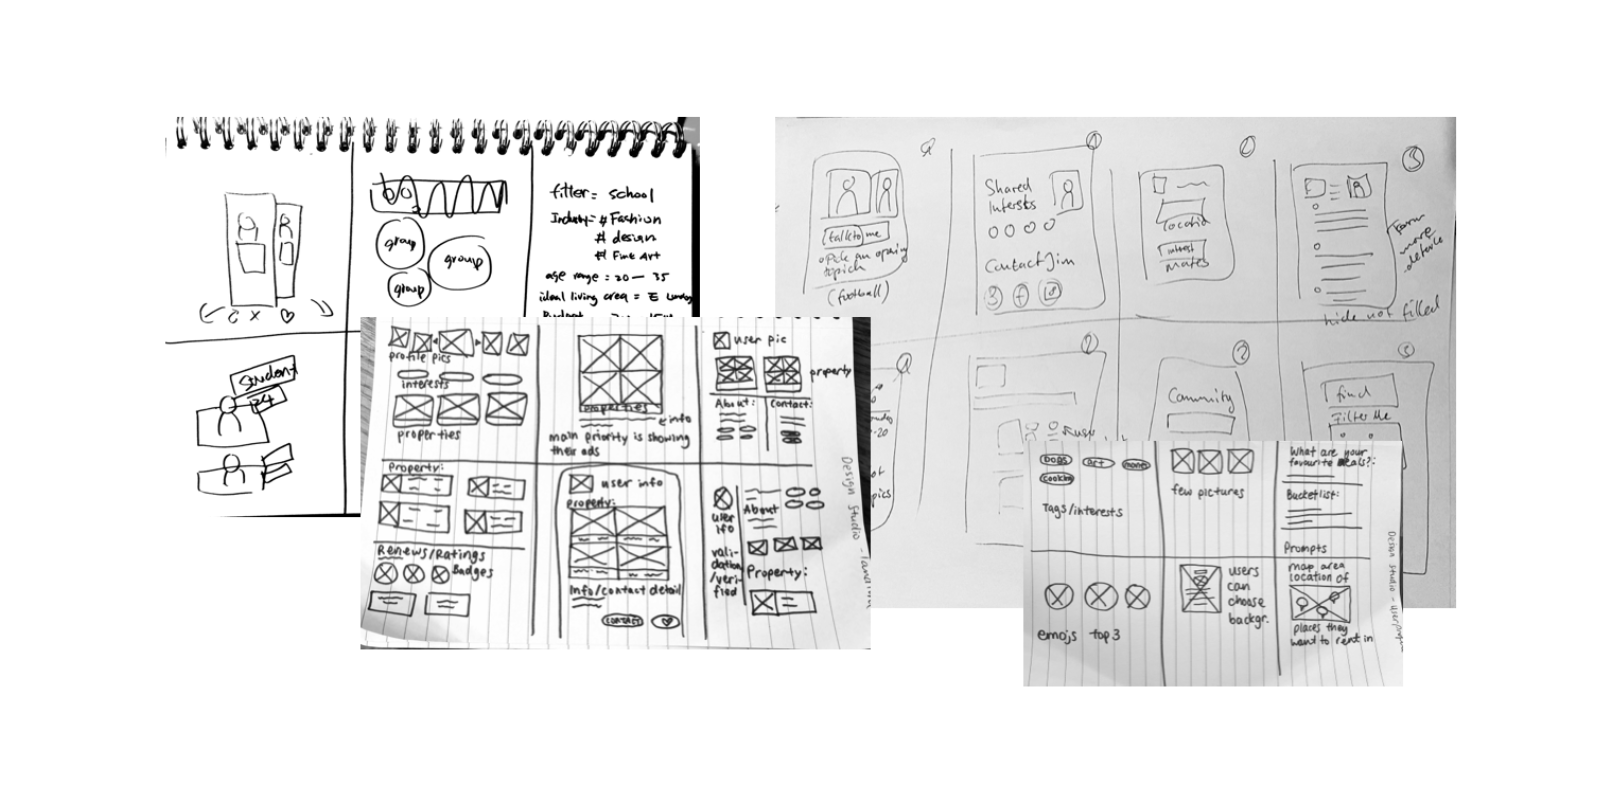 We engaged in a design studio to brainstorm as many features as possible